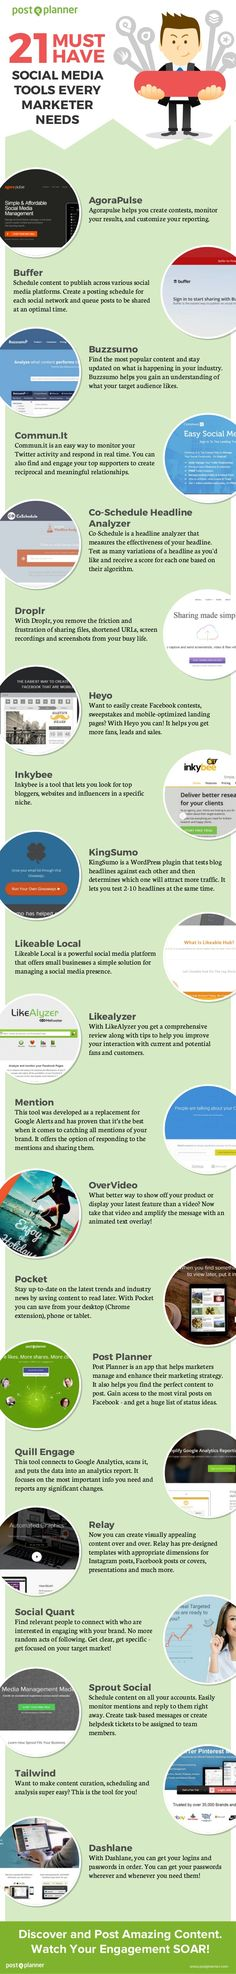 MUST HAVE21SOCIAL MEDIA TOOLS EVERY MARKETER NEEDS AgoraPulse Agorapulse helps you create contests, monitor your results, ...